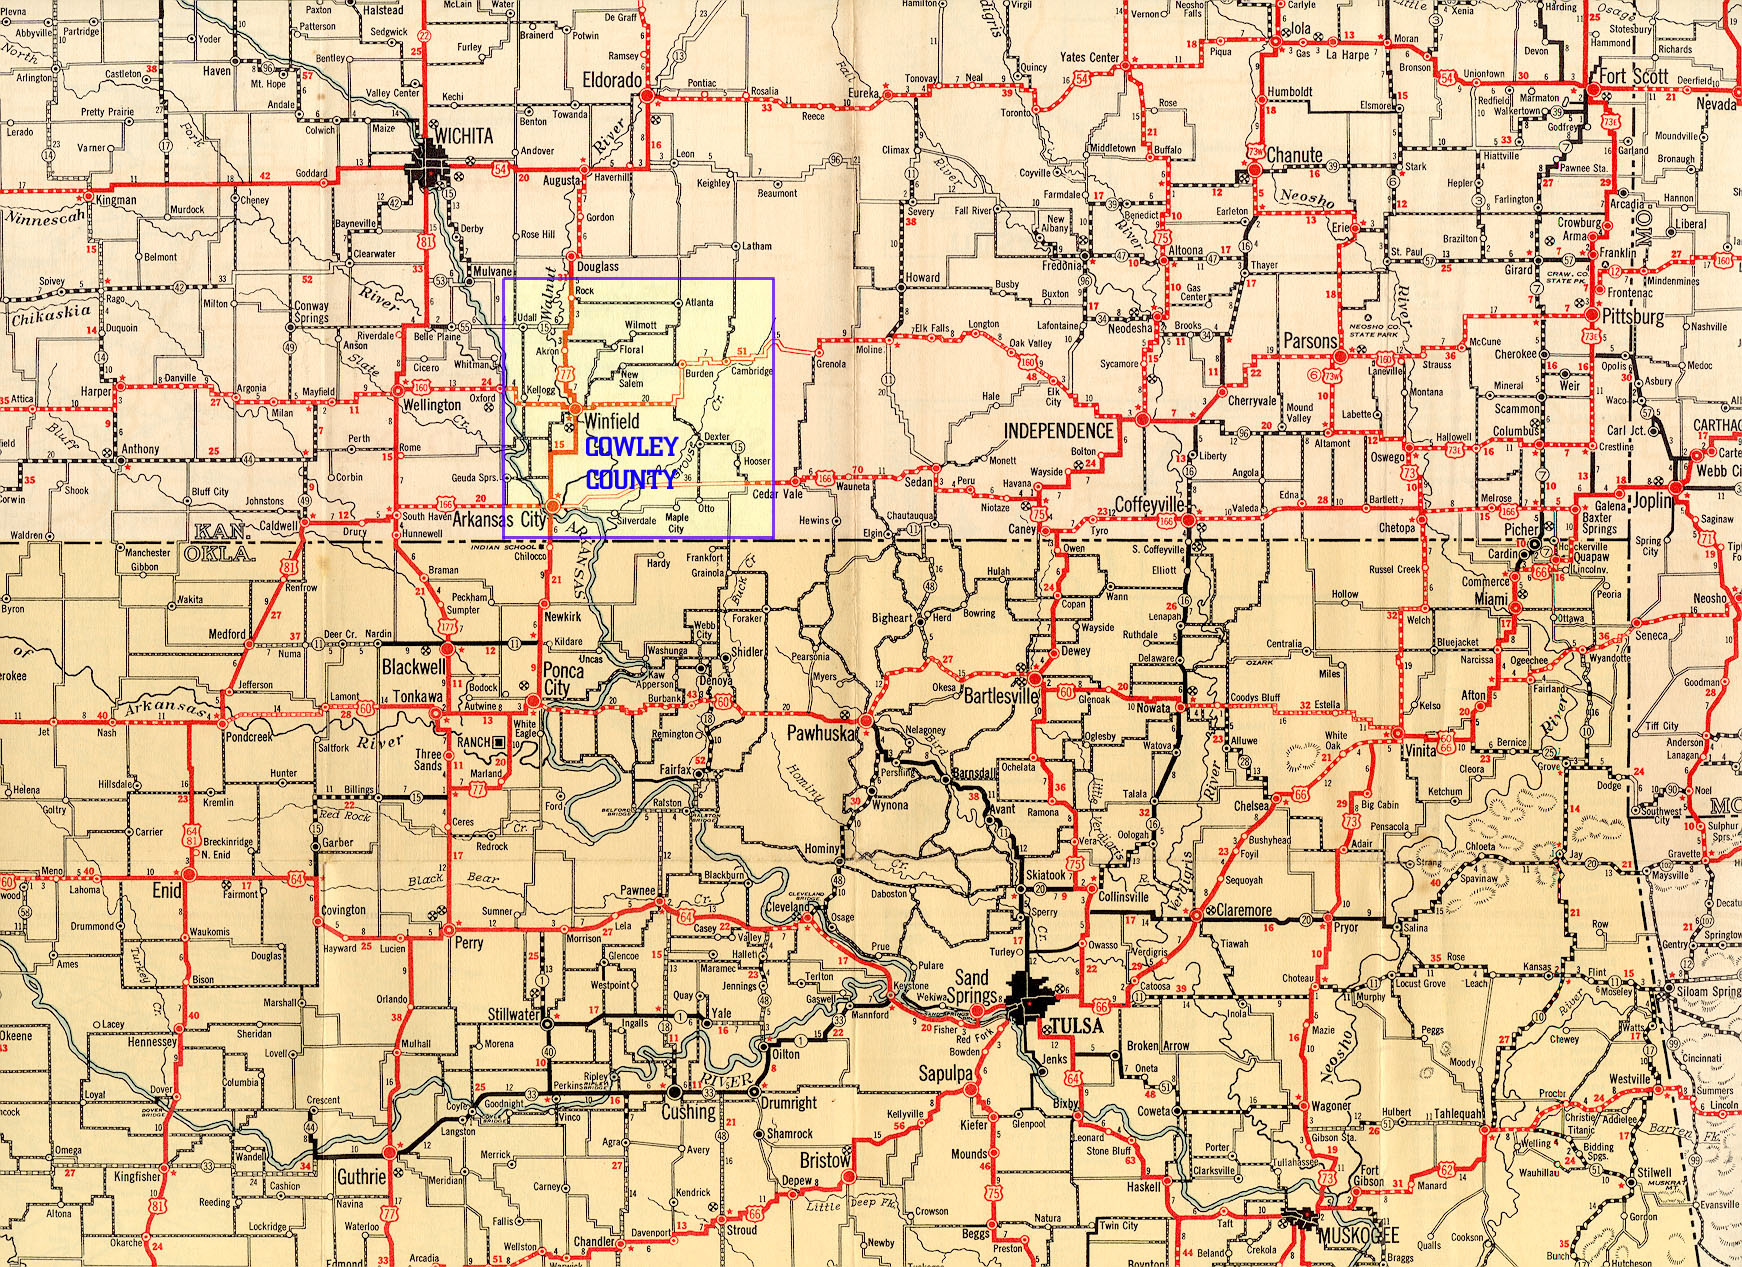 Texaco Highway Map Of Southern Kansas And Northern Oklahoma - Oklahoma highway map